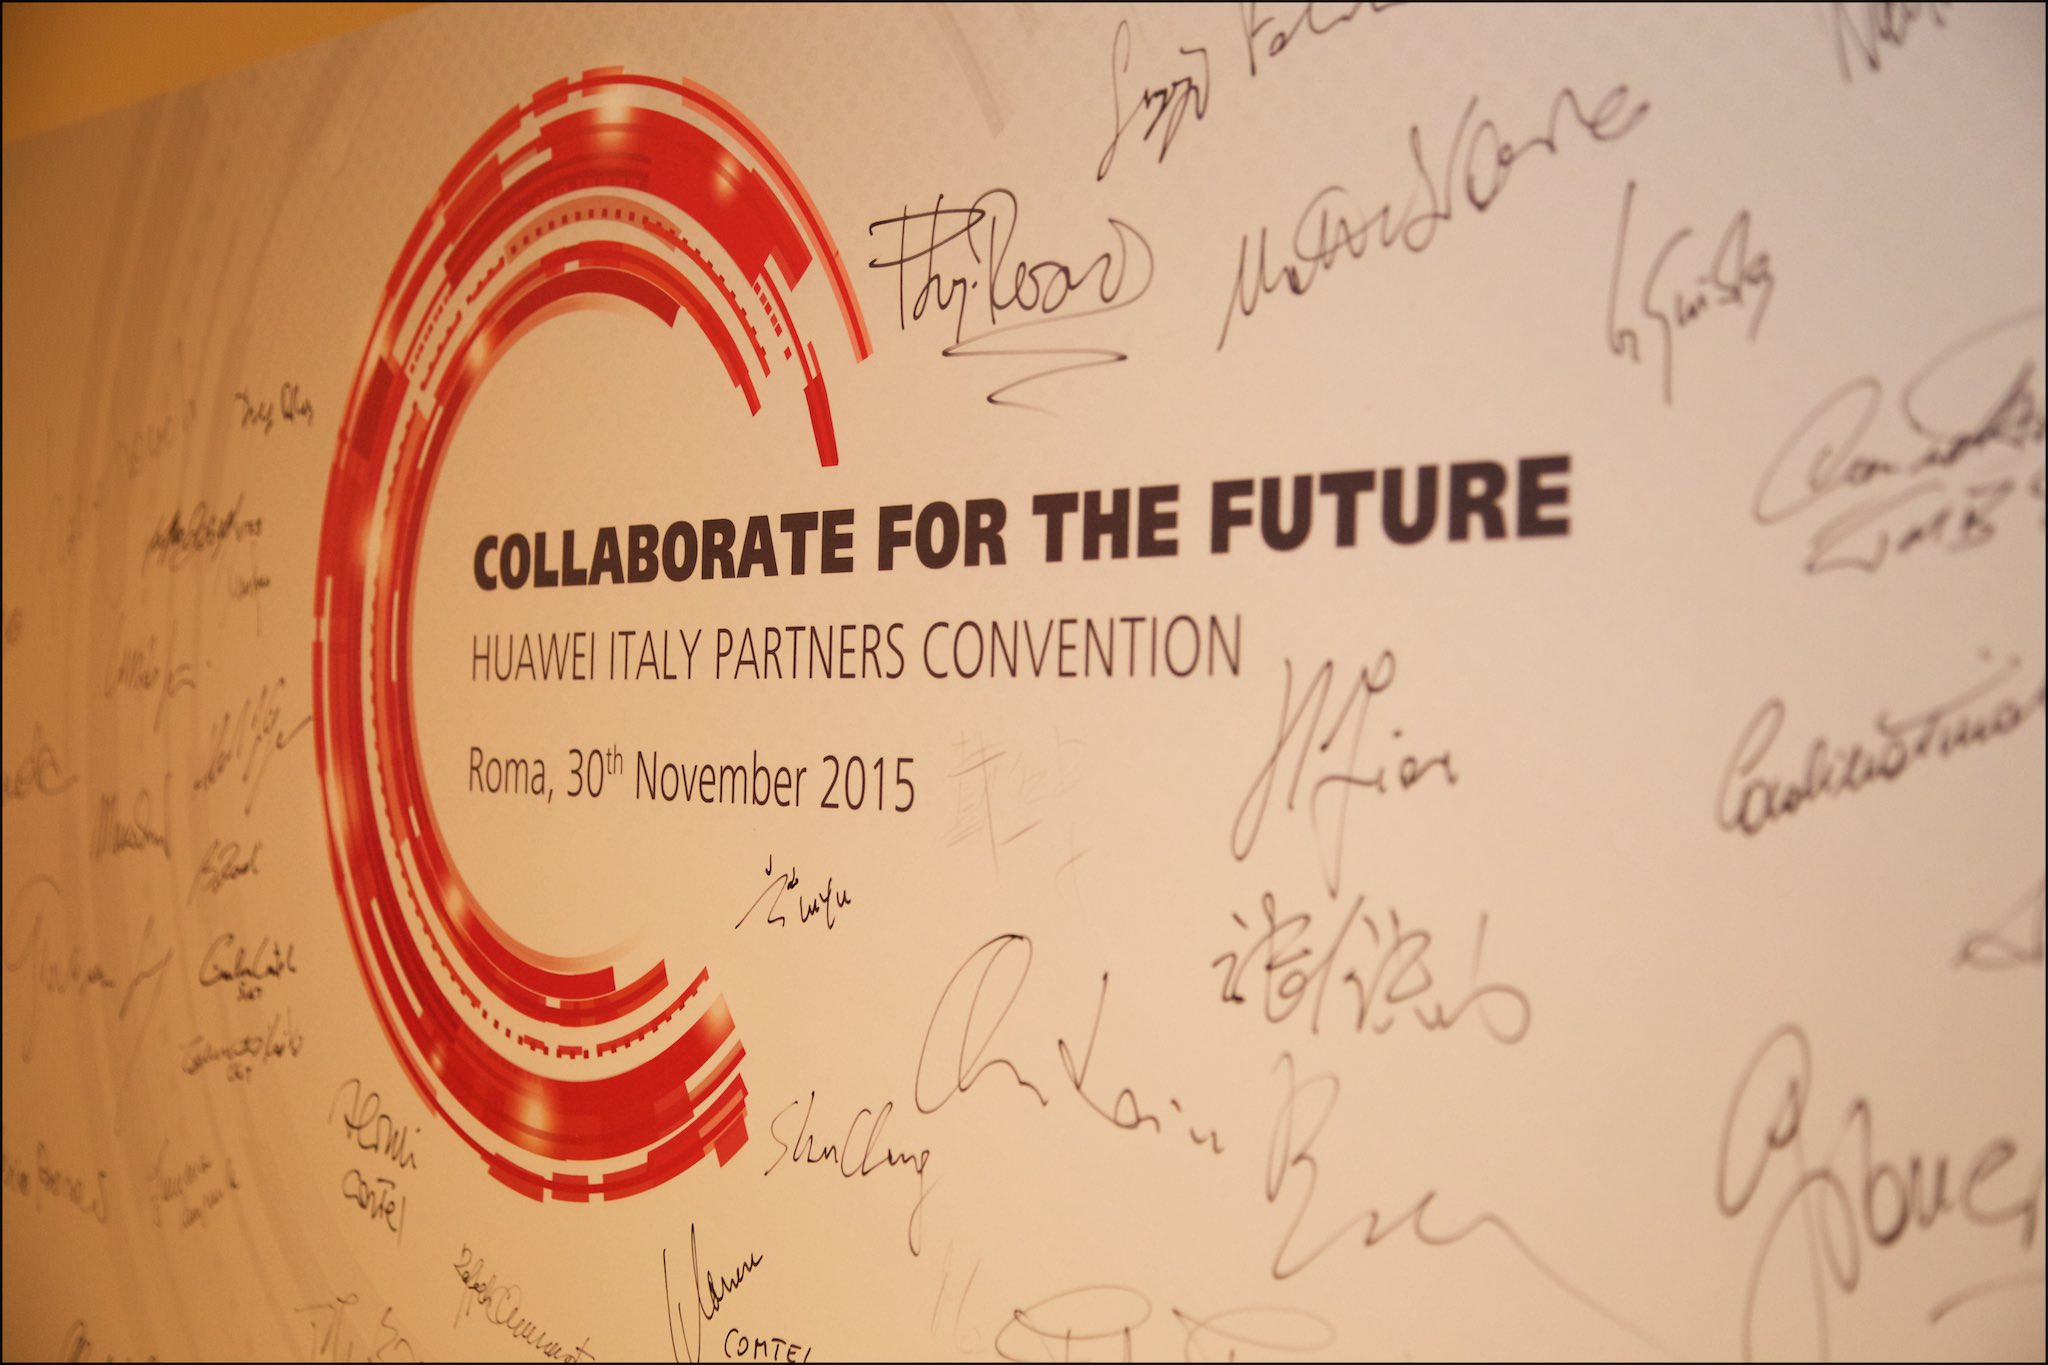 HUAWEI ITALY PARTNER CONVENTION (8)